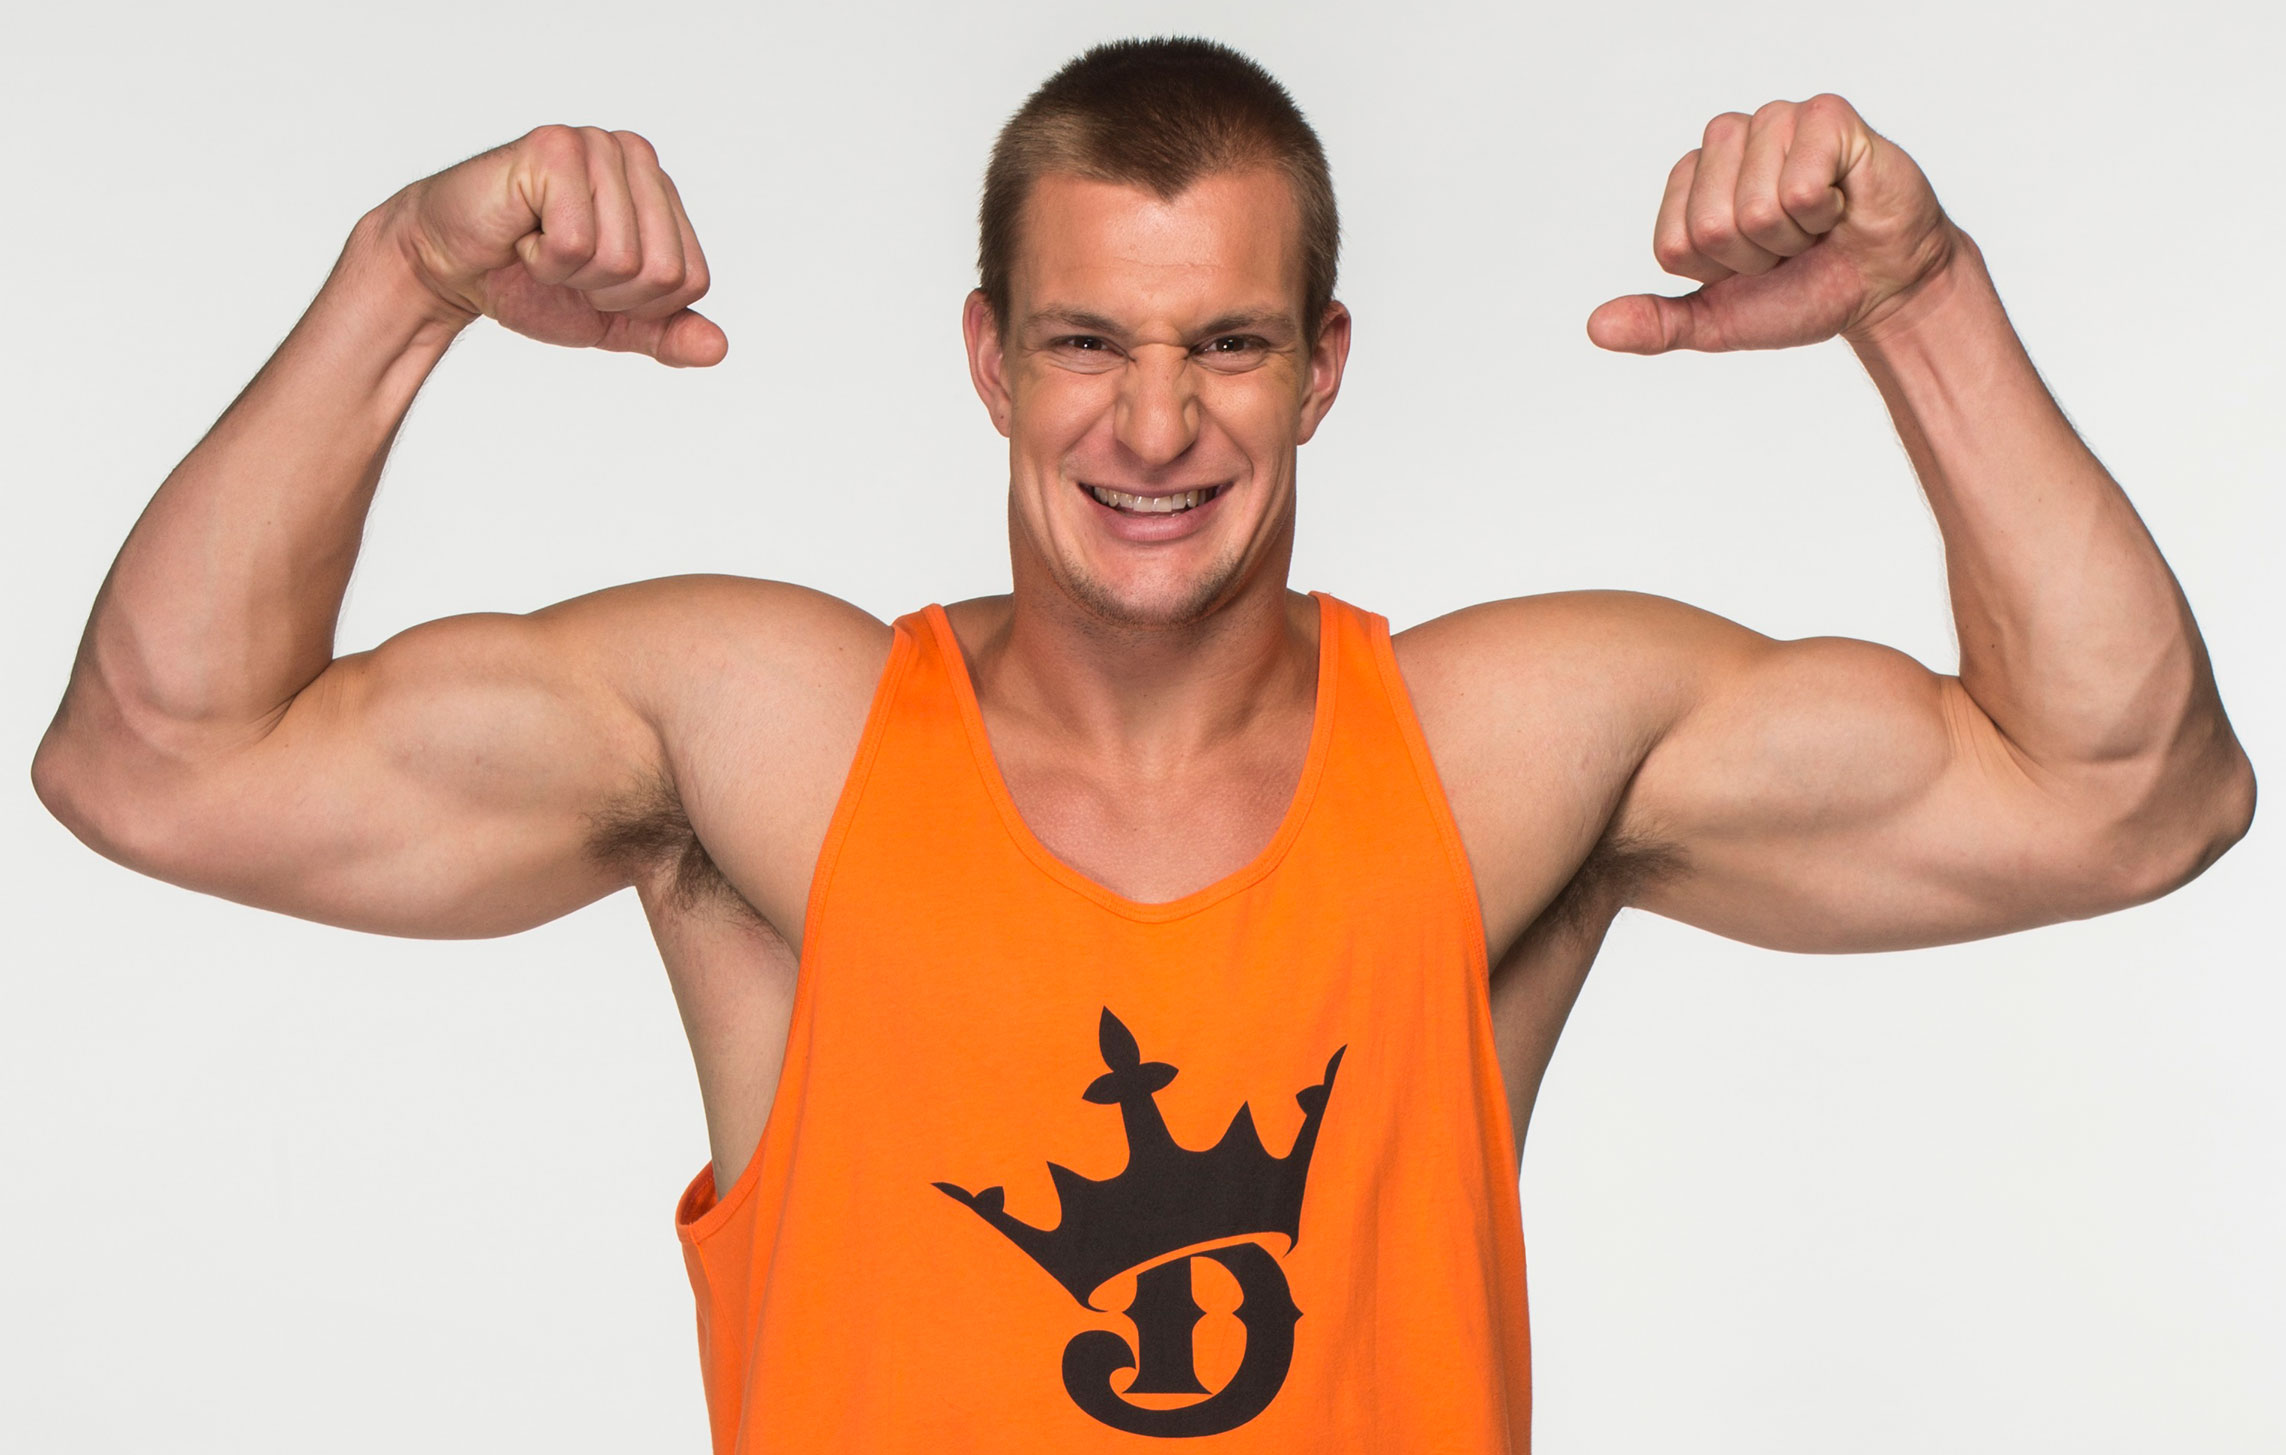 Rob Gronkowski of the New England Patriots poses for an advertisement for DraftKings